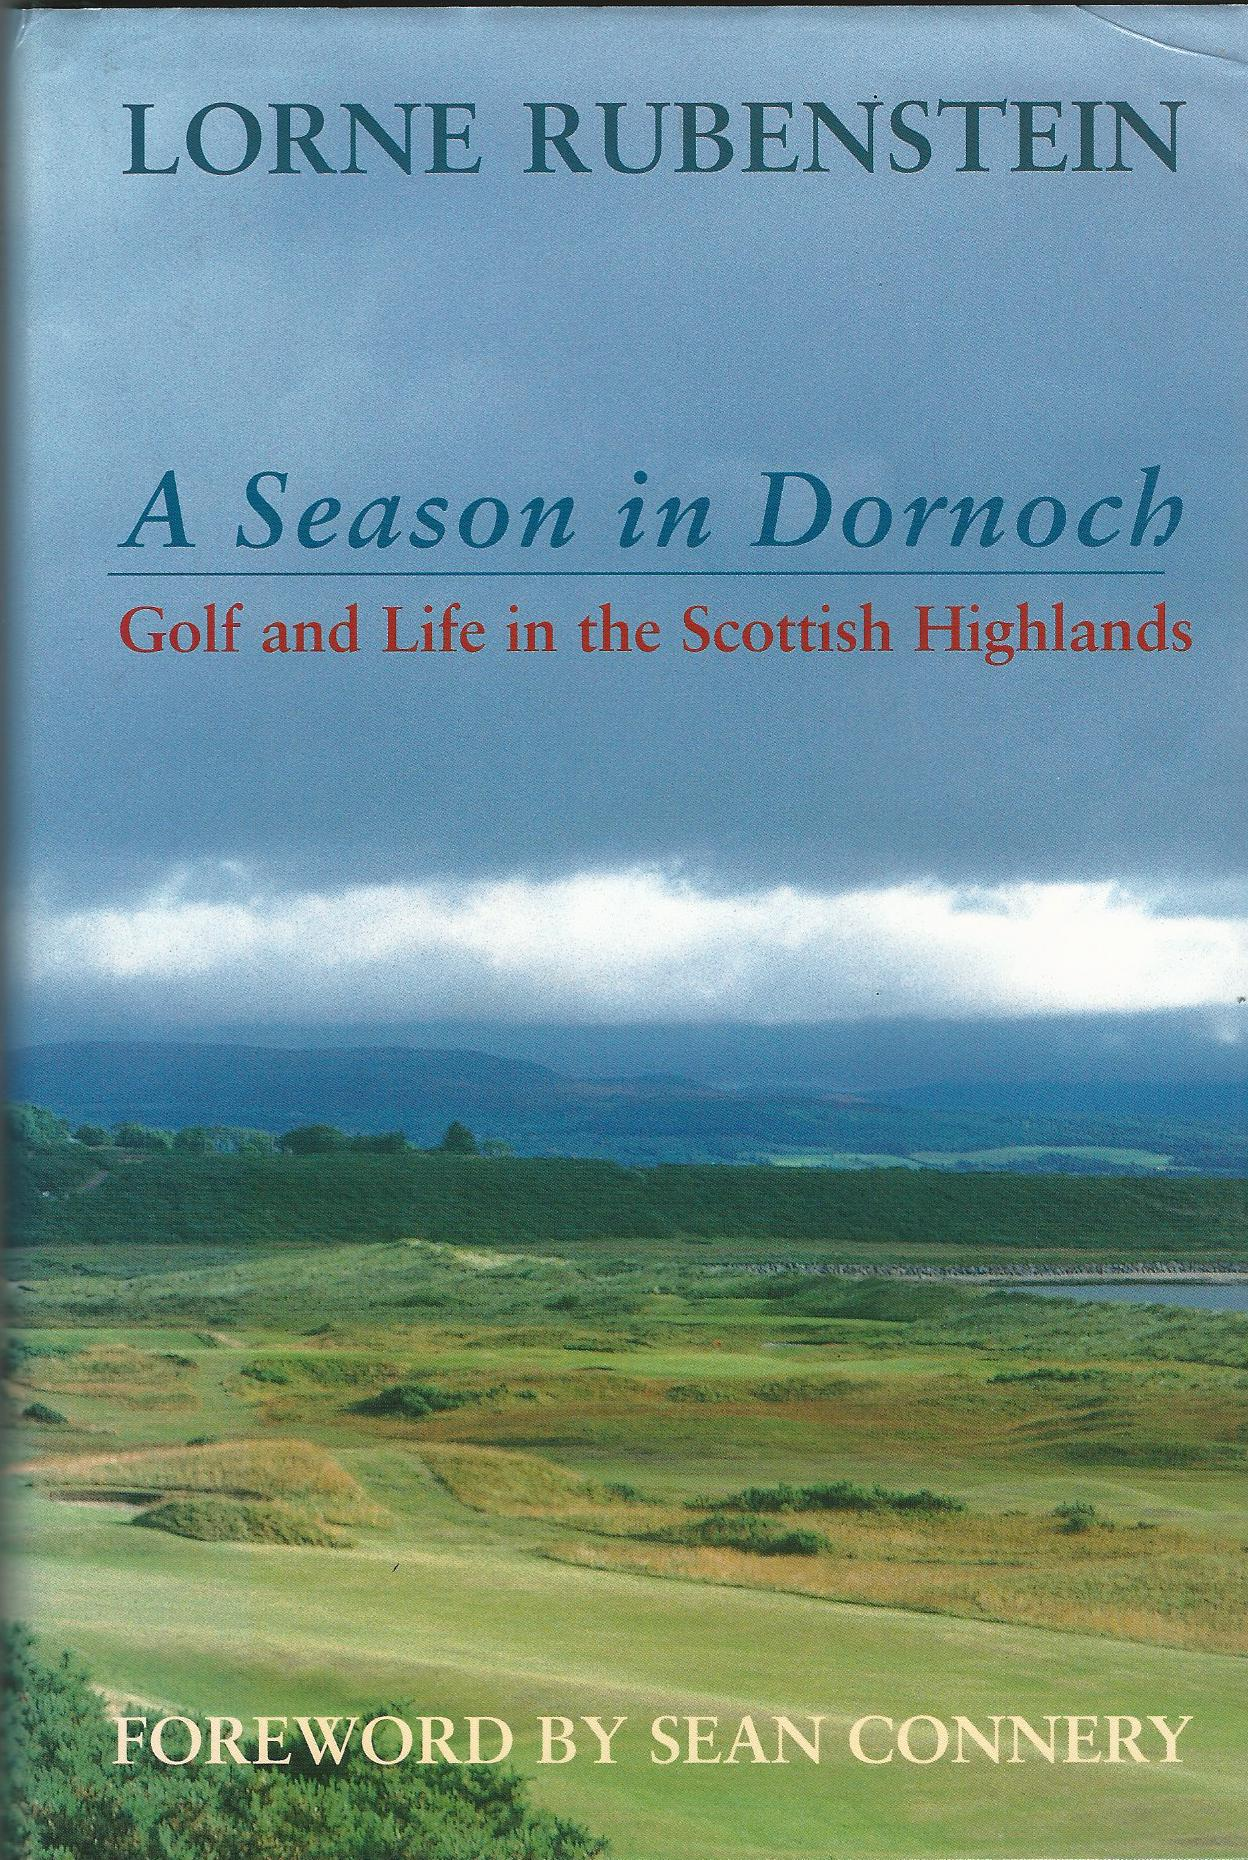 Image for A Season in Dornoch Golf and Life in the Scottish Highlands